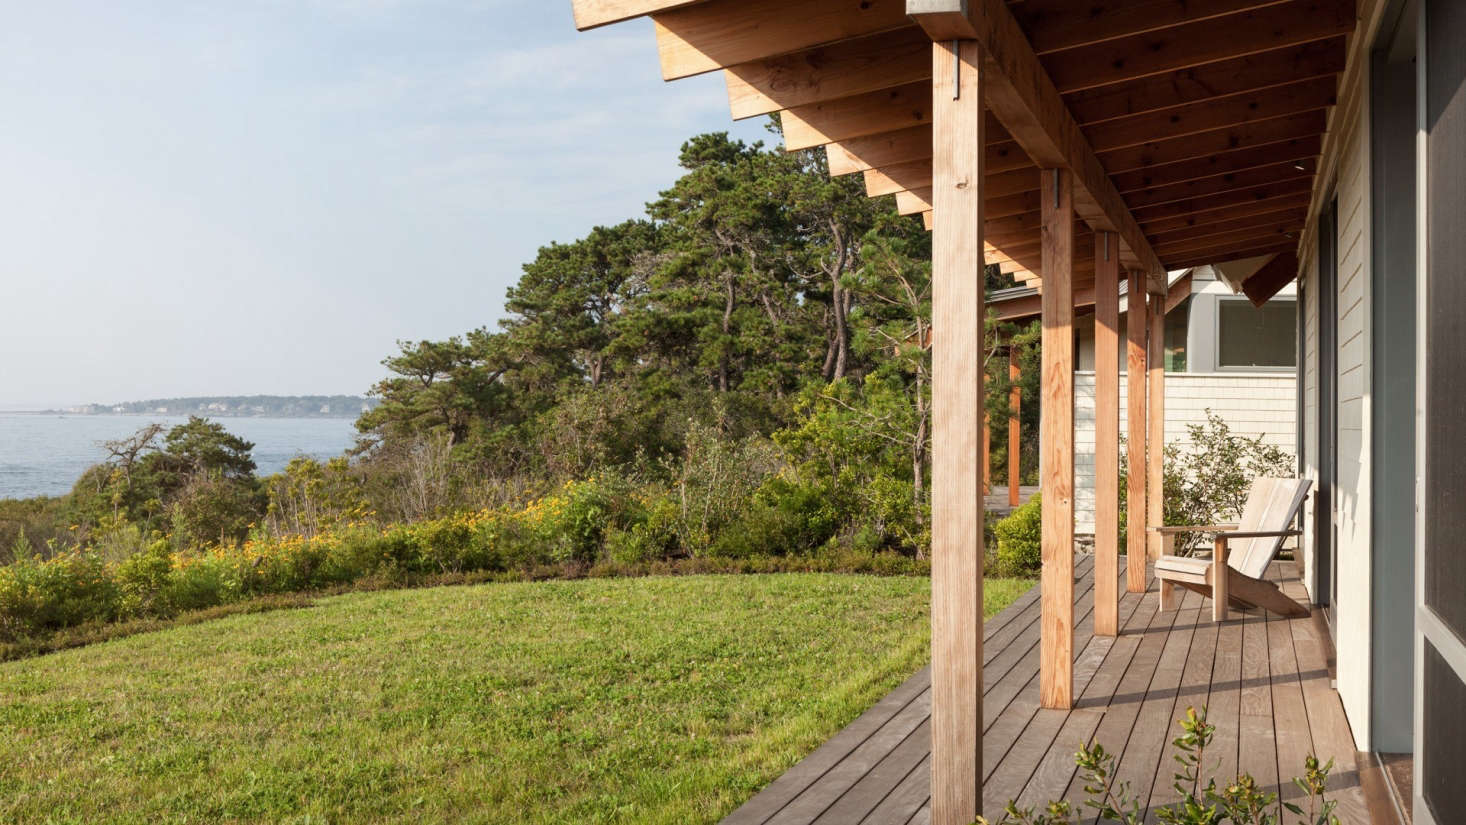 The Ultimate Indoor Outdoor House On 36 Acres In Coastal